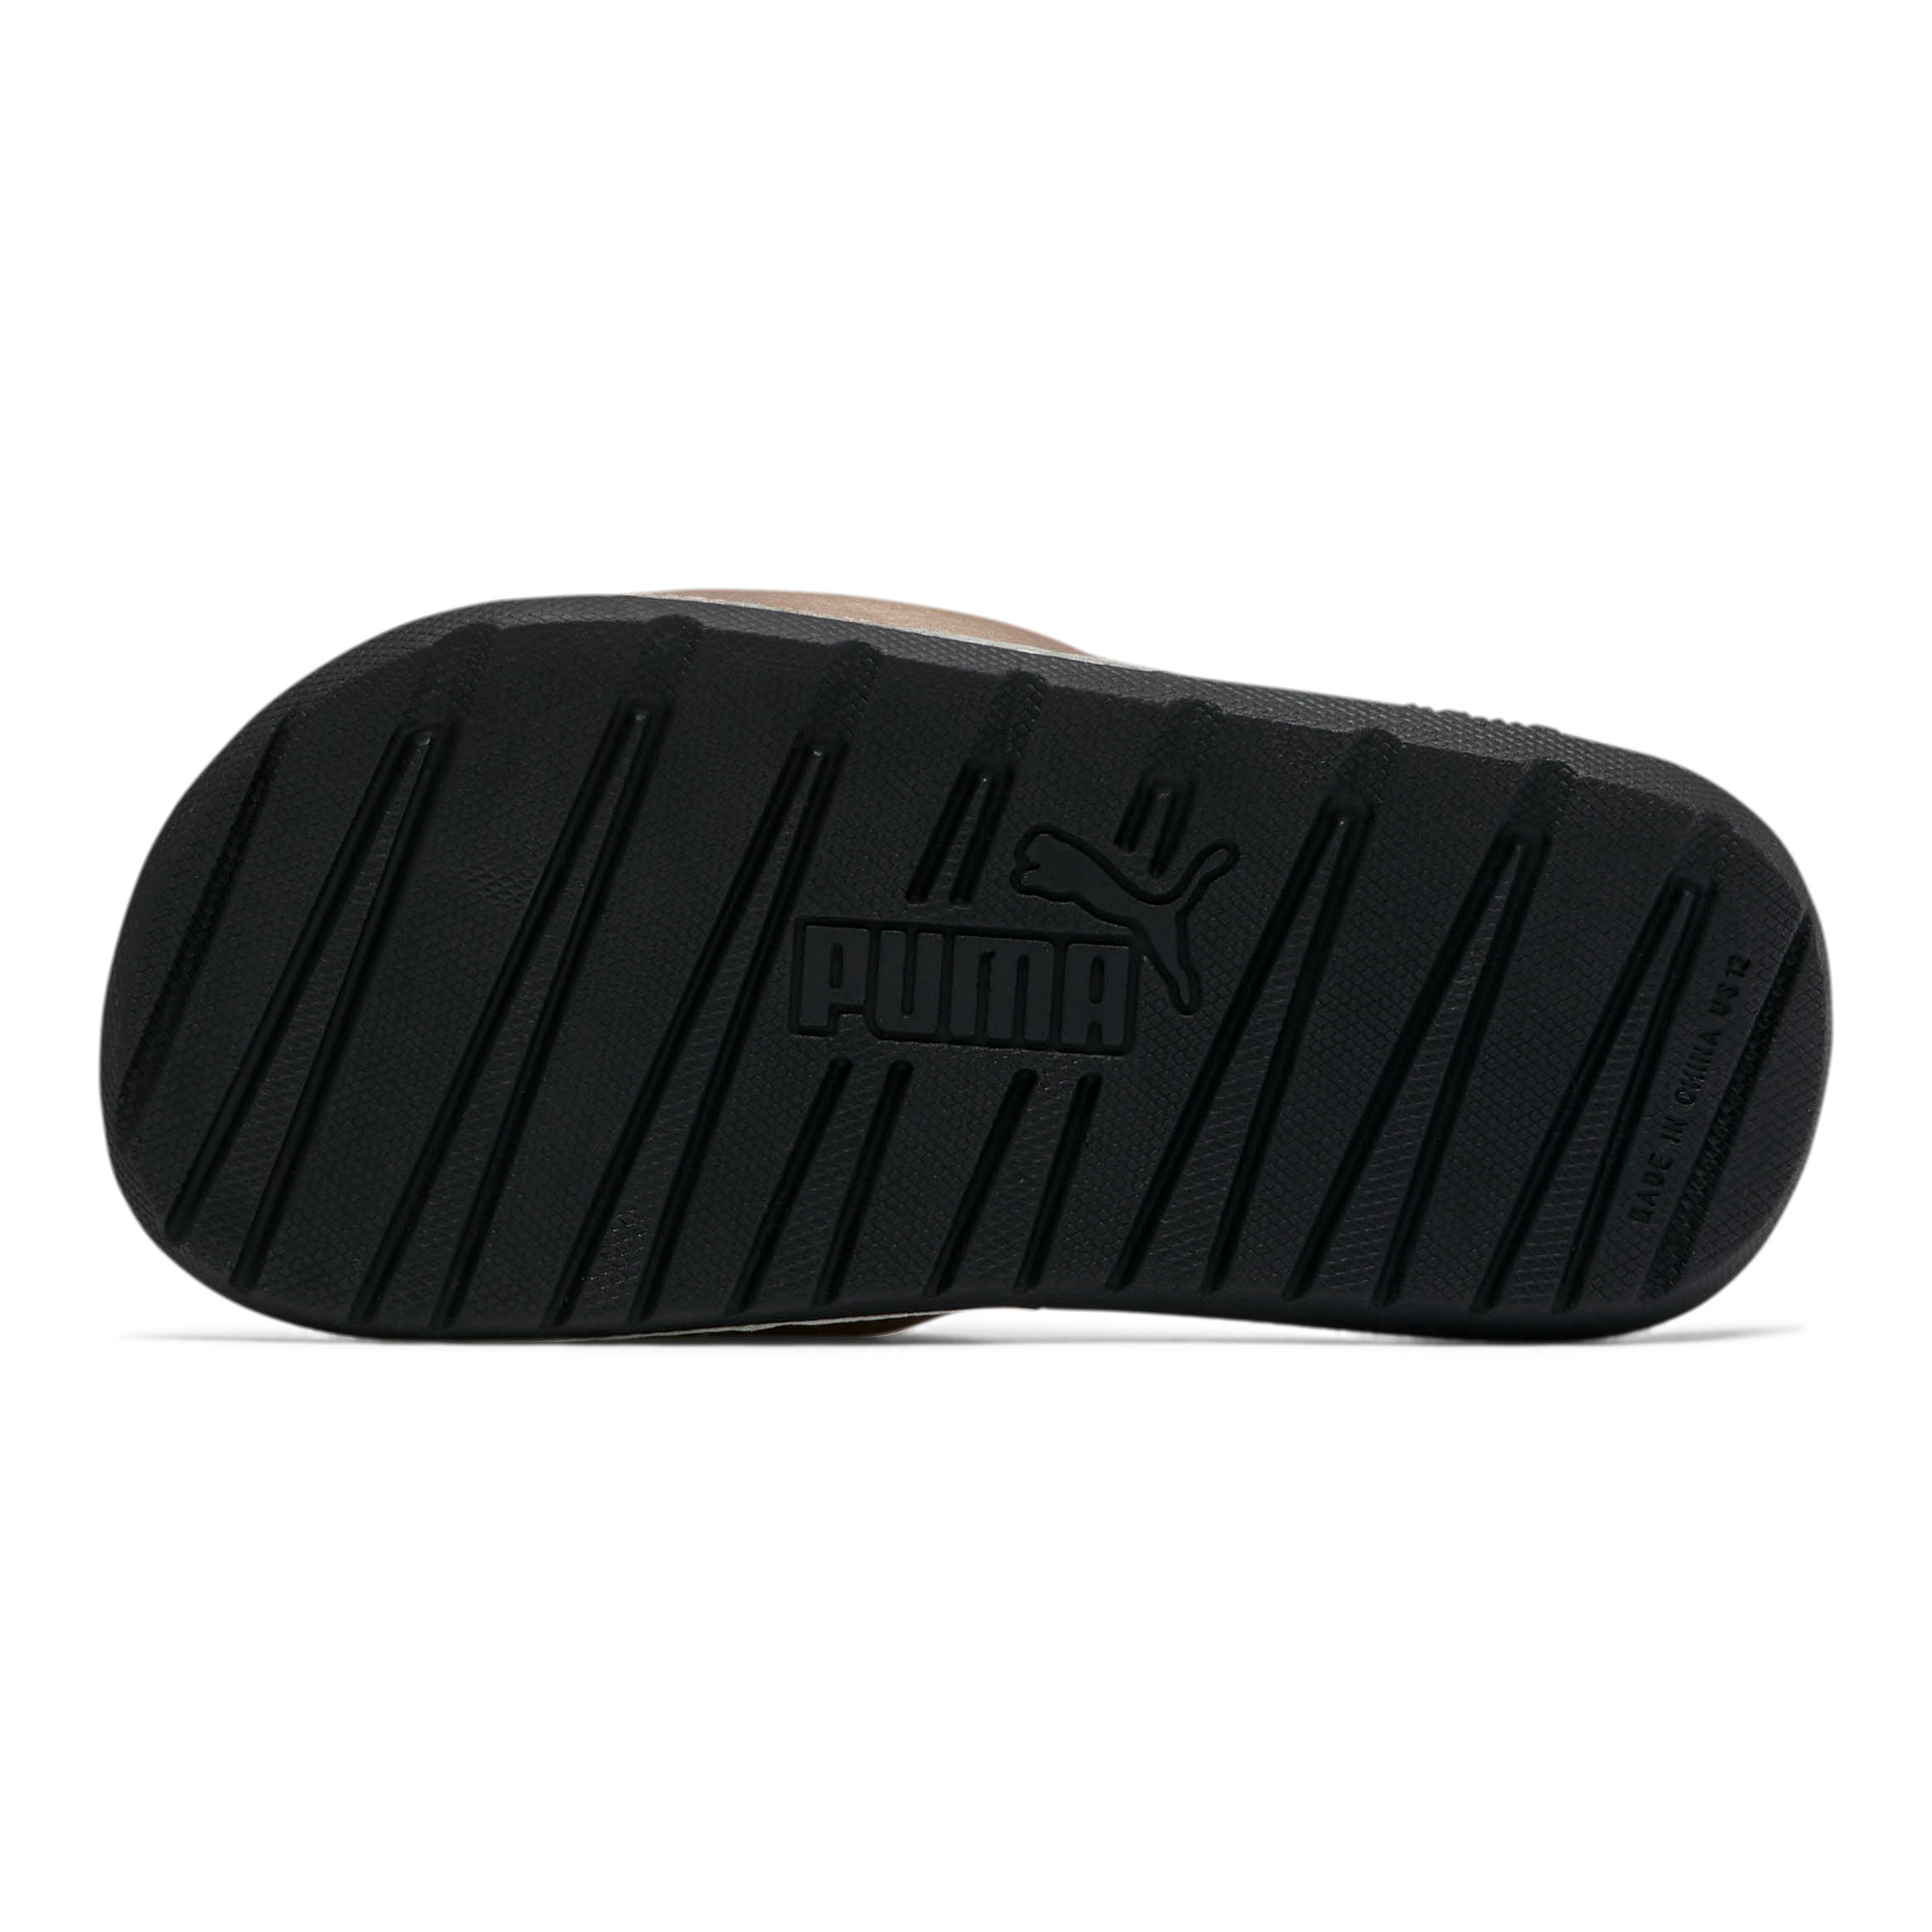 PUMA-Pre-School-Cool-Cat-Metallic-Little-Slides thumbnail 5